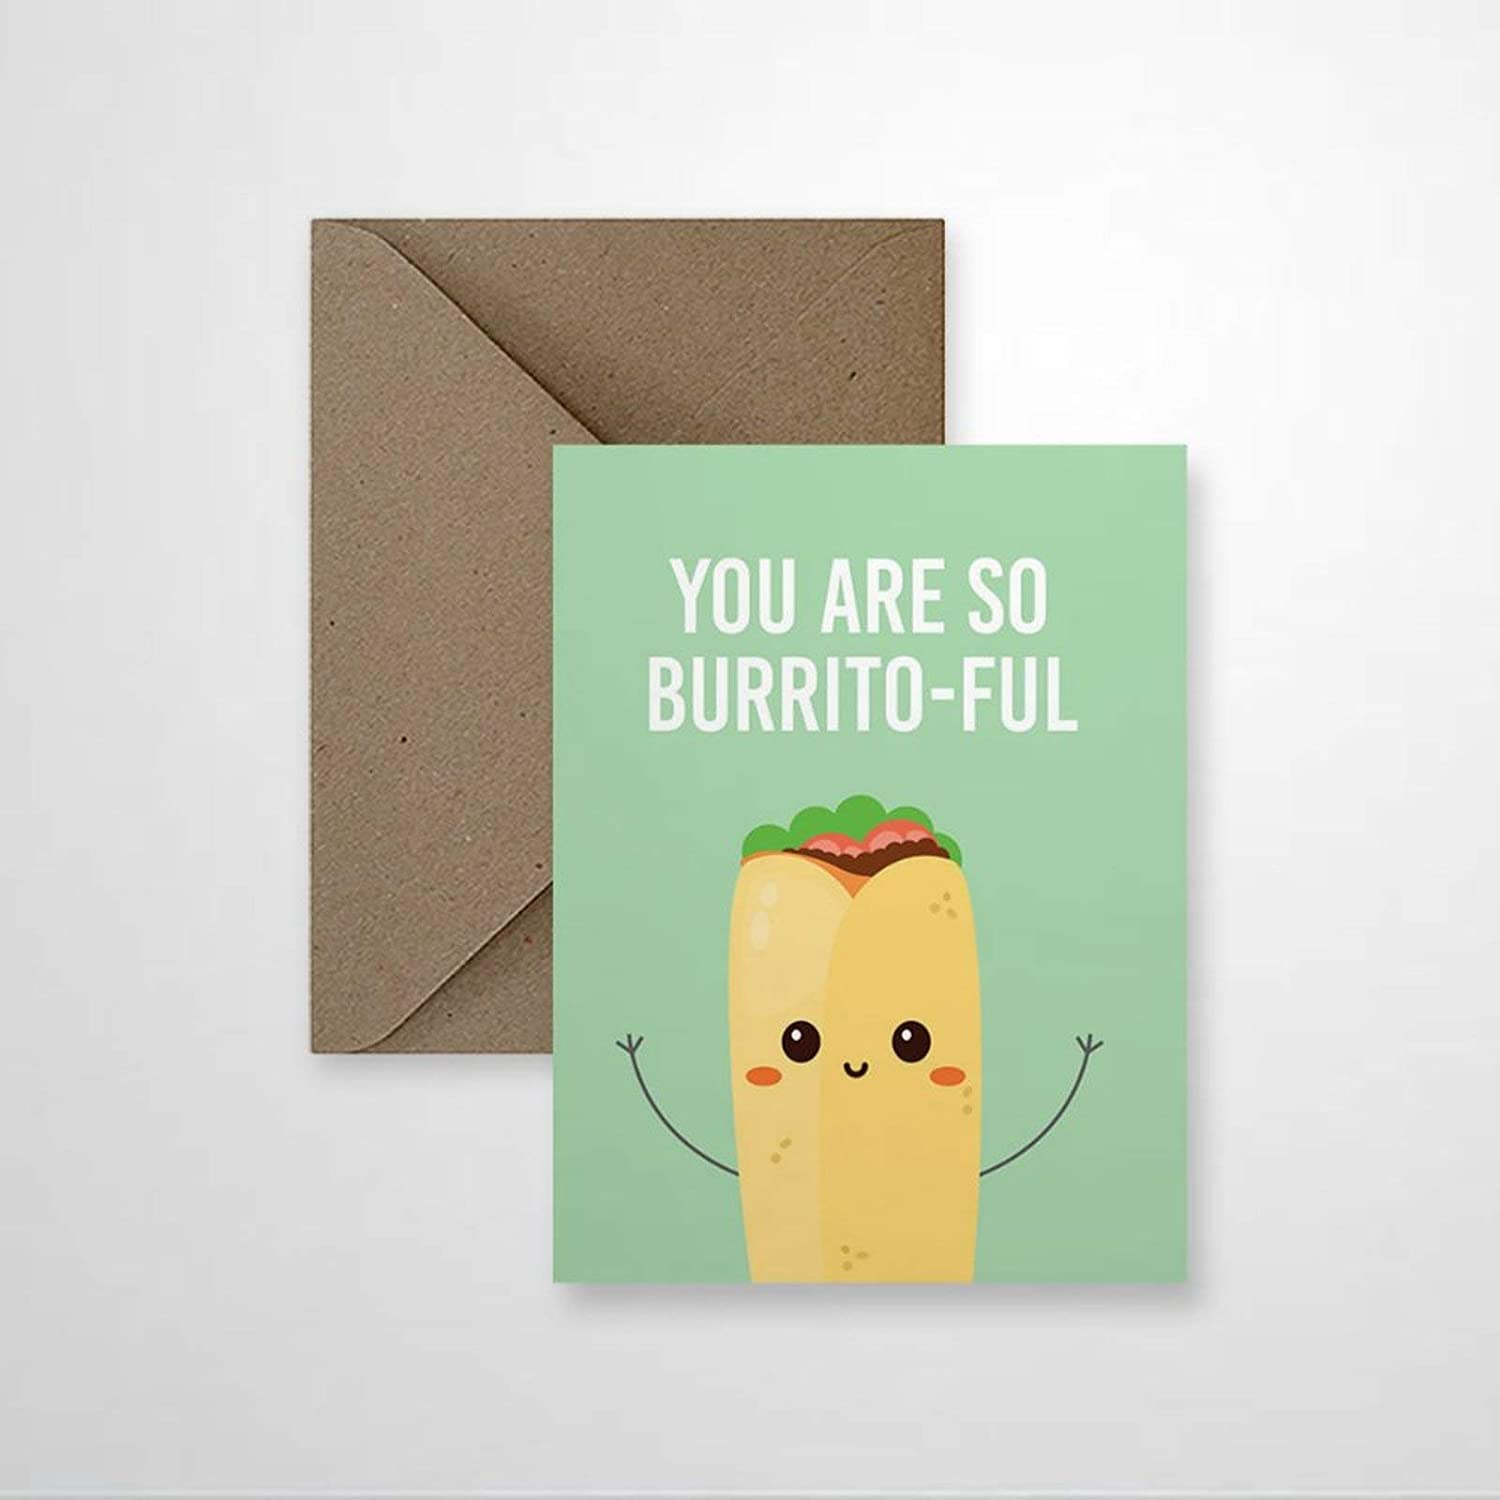 Love for Her Cute Girlfriend Pun Food Lover Greeting Cards Holiday & Seasonal Cards, Folded Easter Cards for Birthday Friendship Wedding Anniversary April Fools' Day.